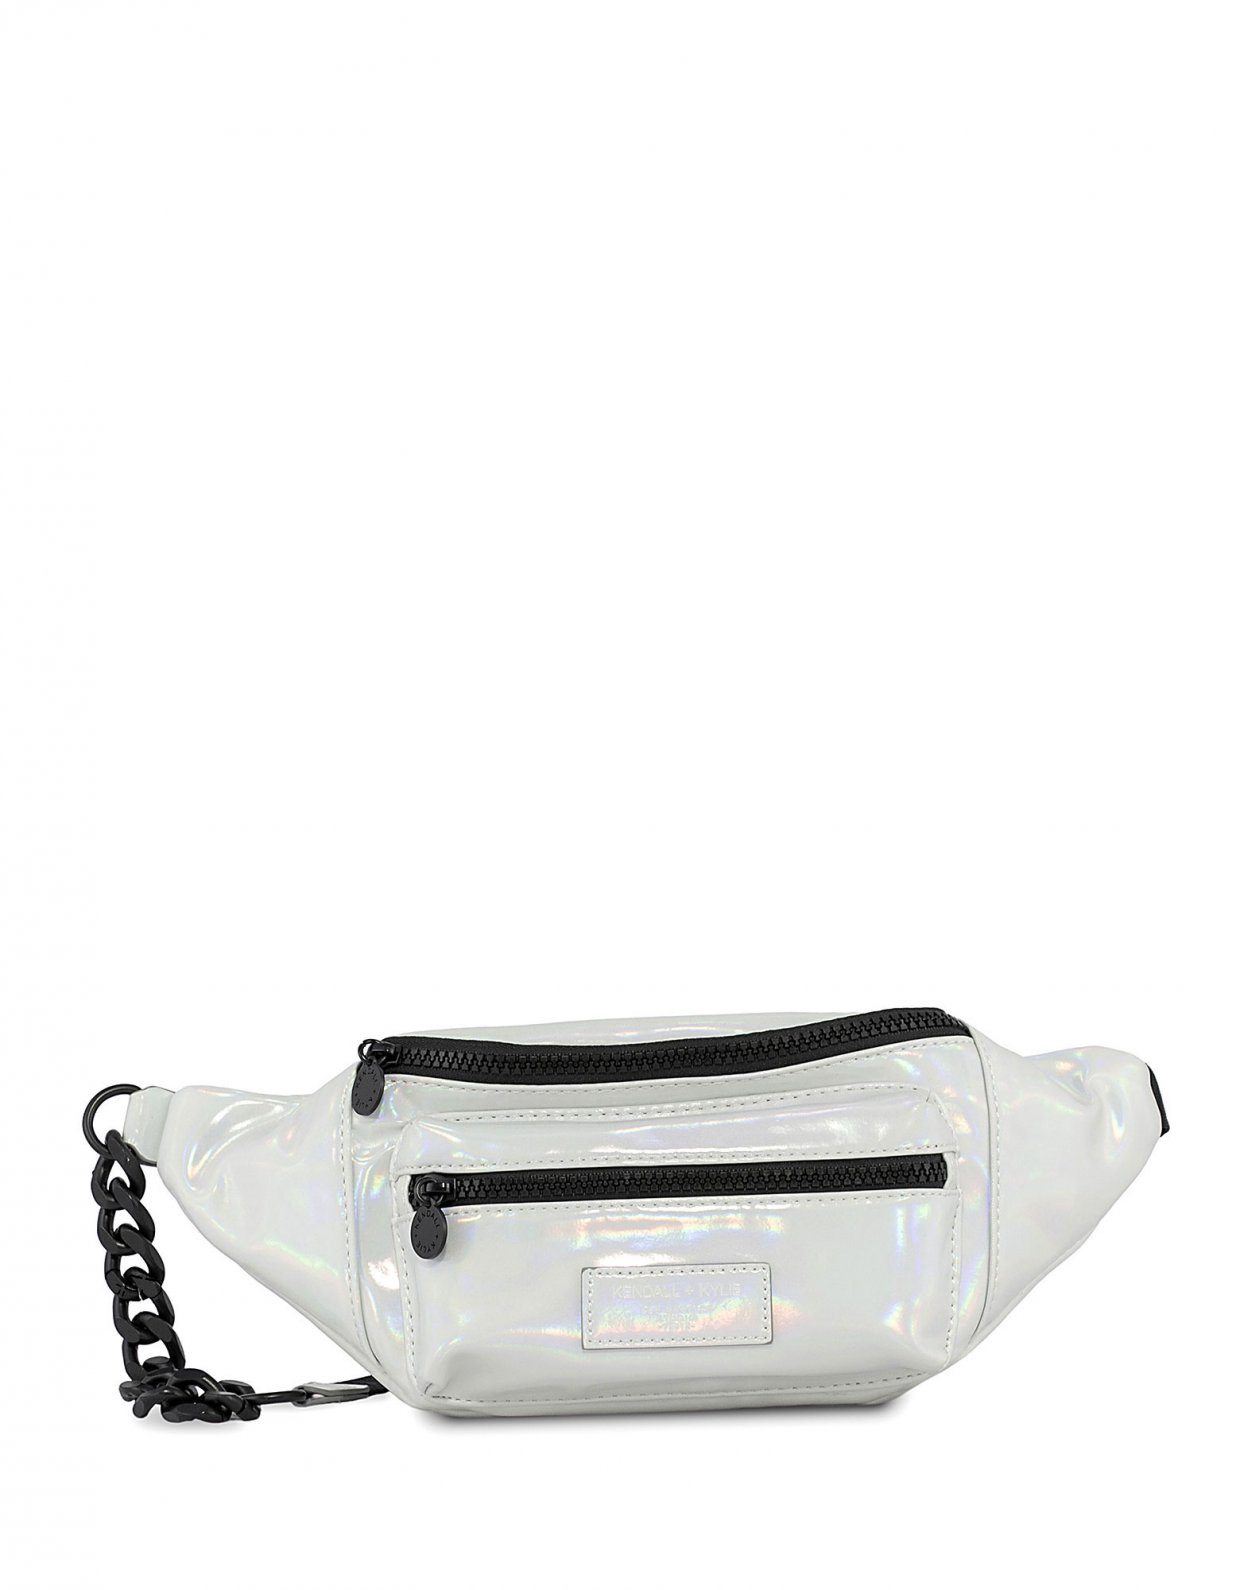 Kendall + Kylie Michelle fanny pack iridescent